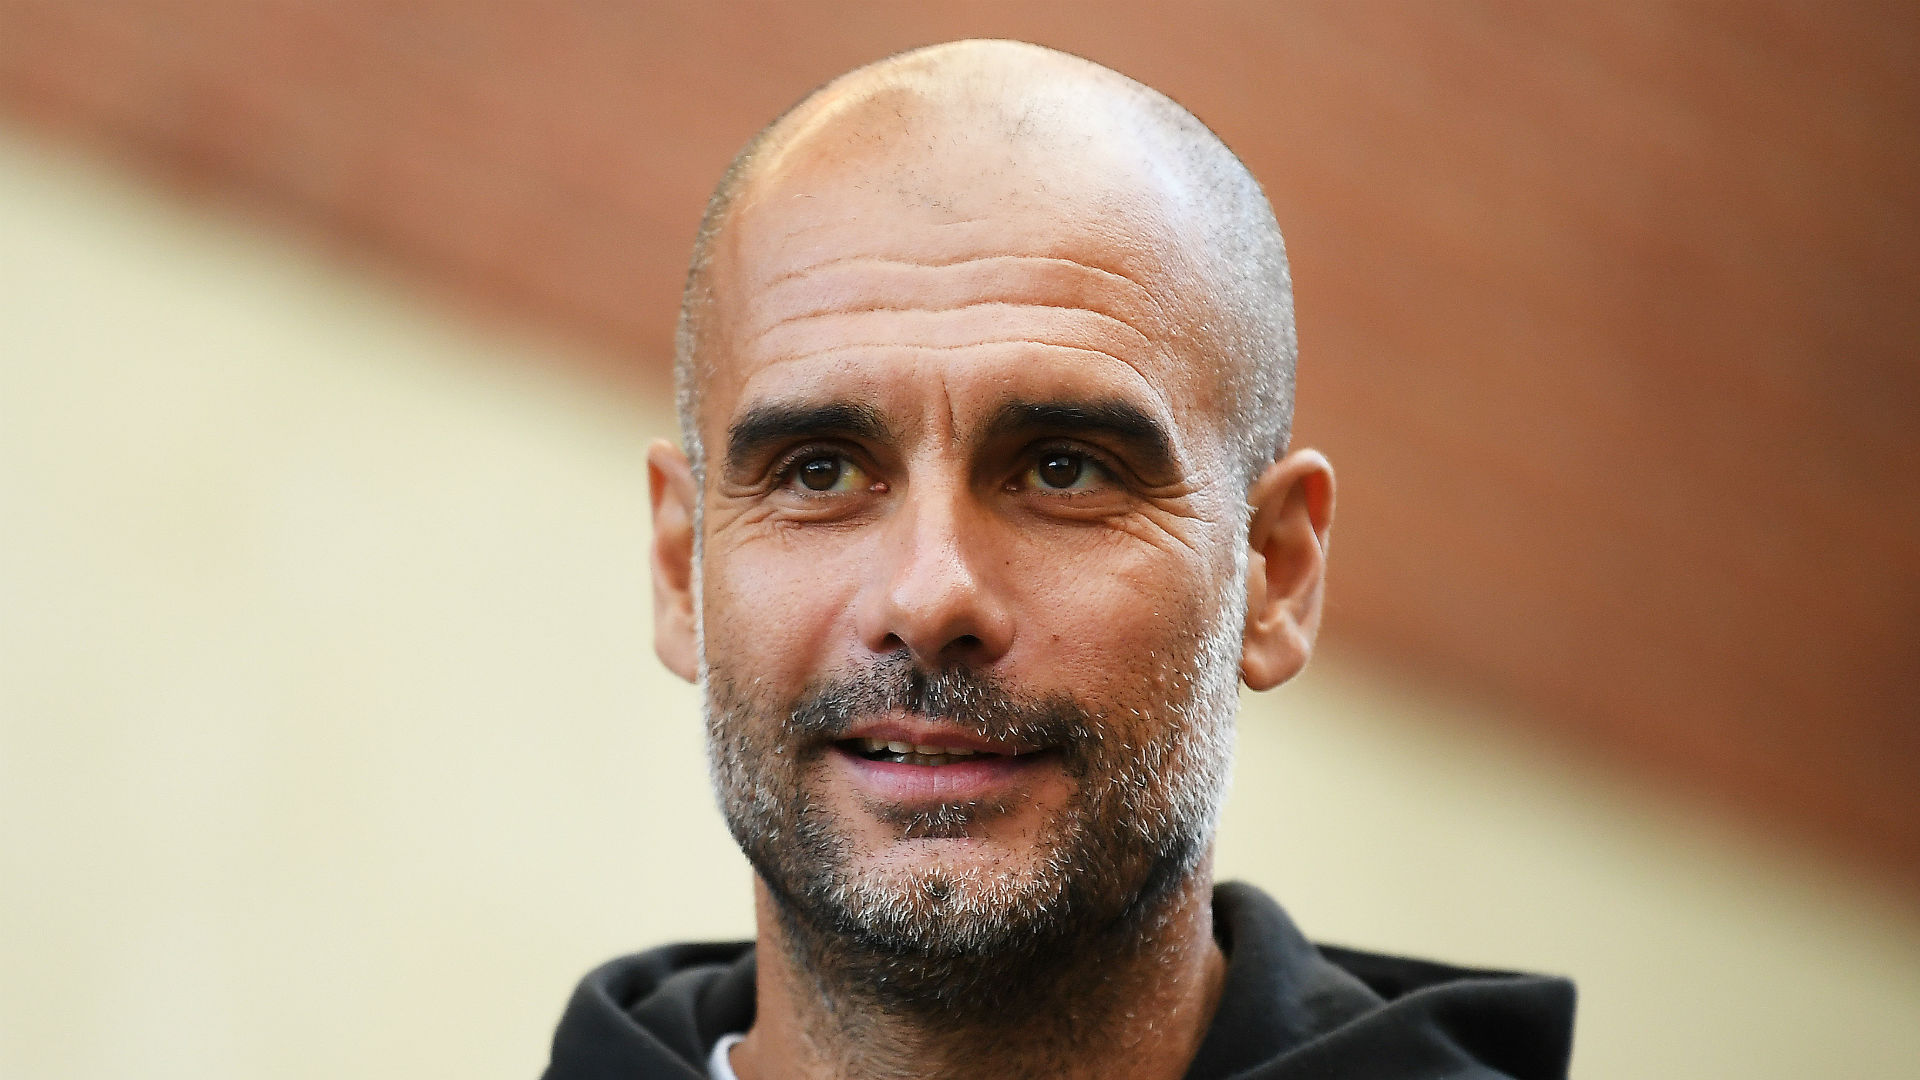 Guardiola: I have no reason to leave Manchester City